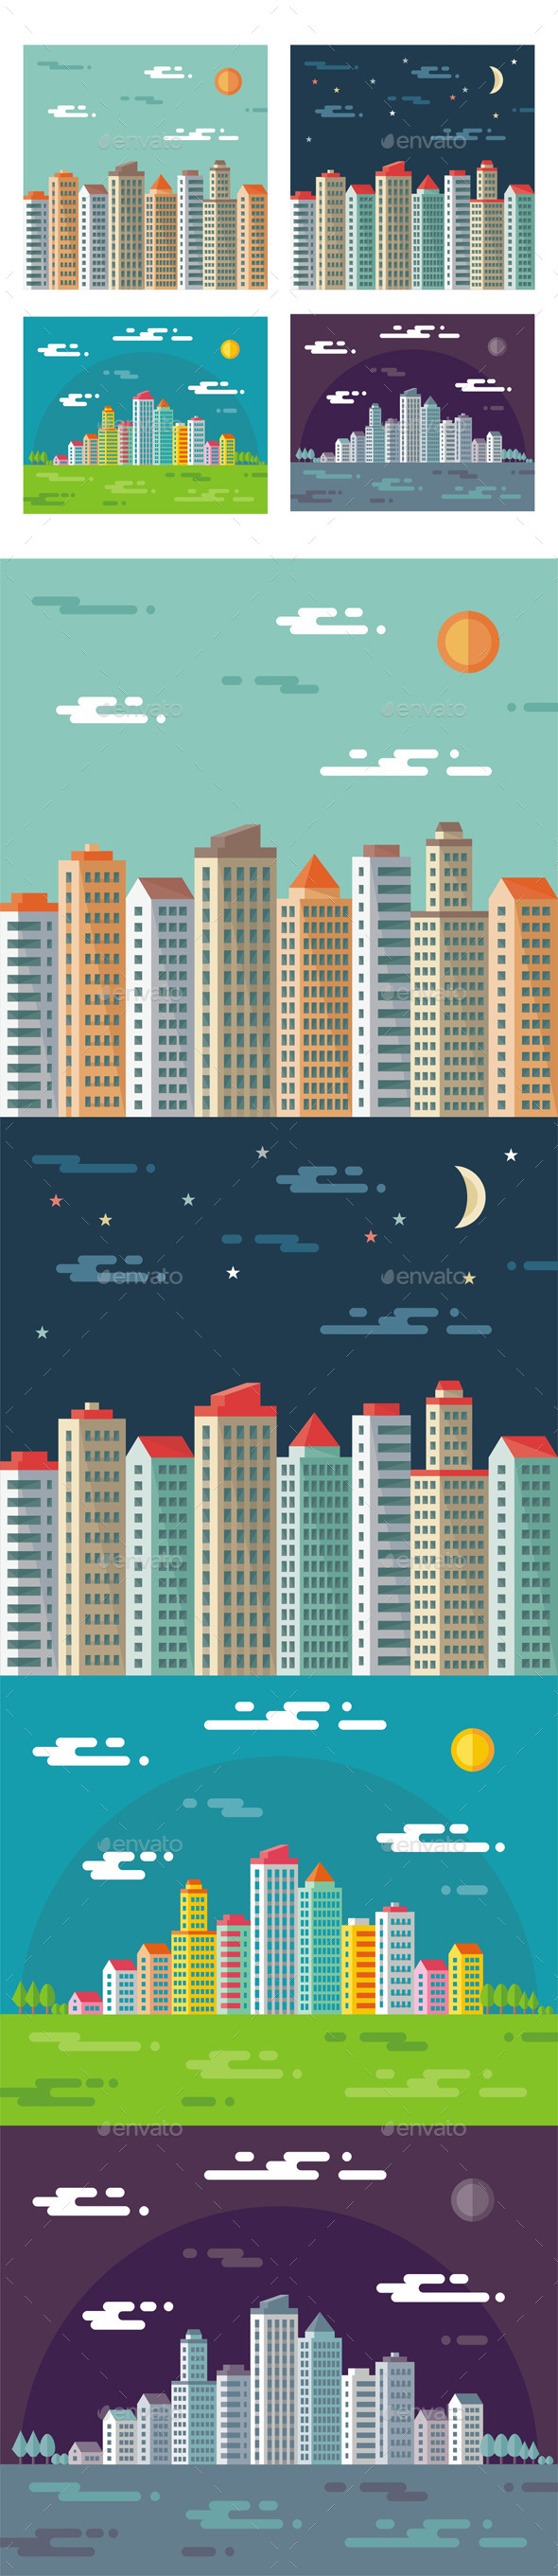 Cityscape - Abstract Buildings in Flat Style - Buildings Objects